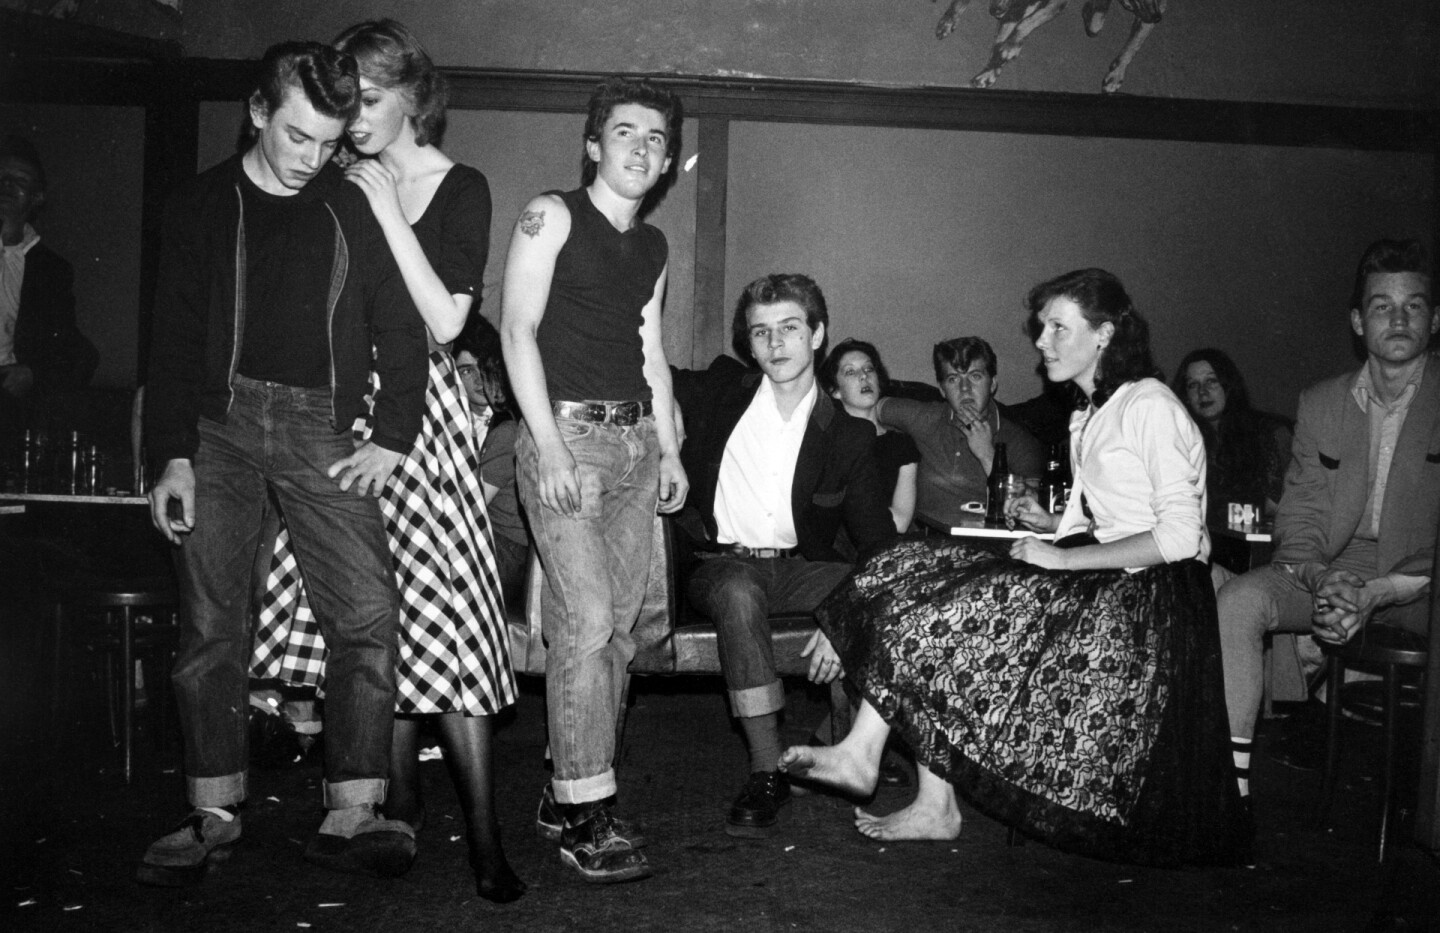 Rockers Teddy Boys and girls at The George pub Hammersmith London November 1976